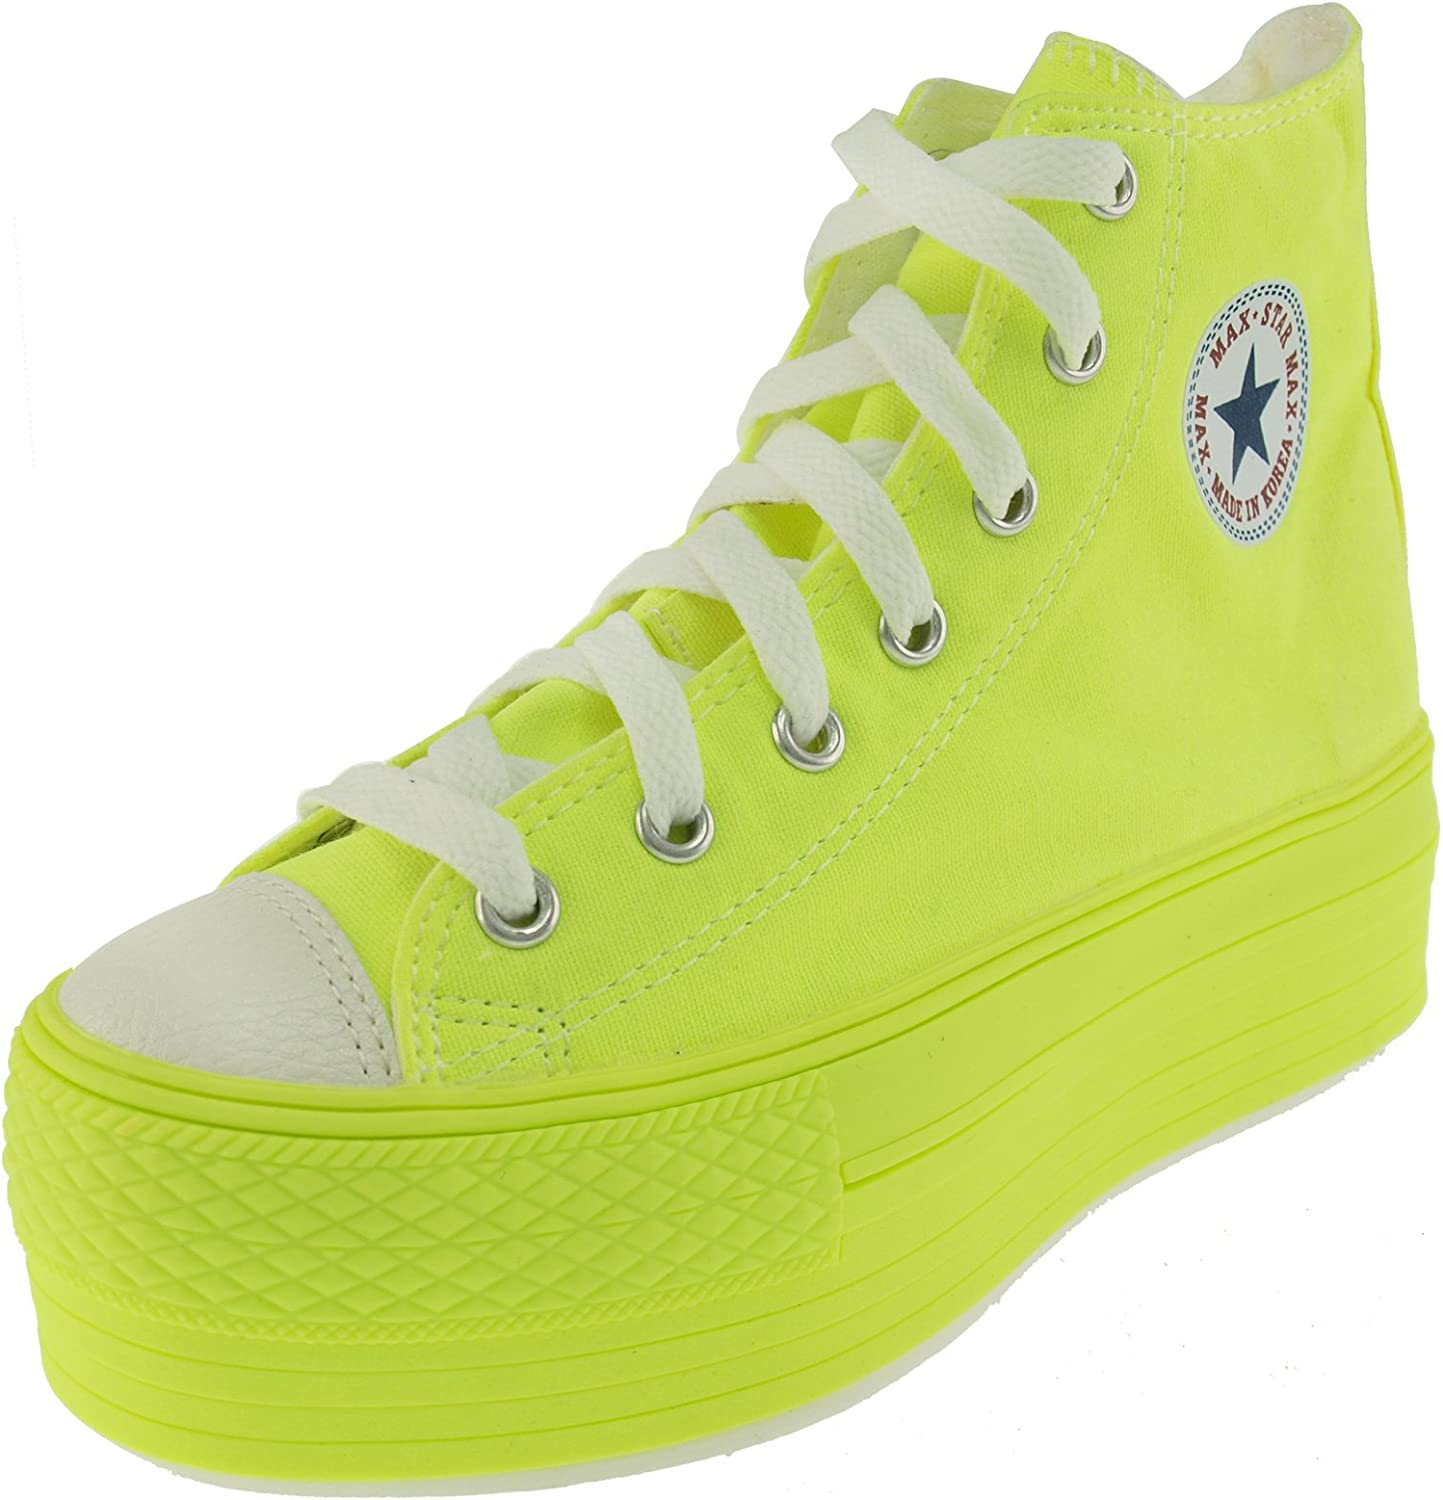 Maxstar Fluorescent color High Top Canvas Platform Sneakers shoes